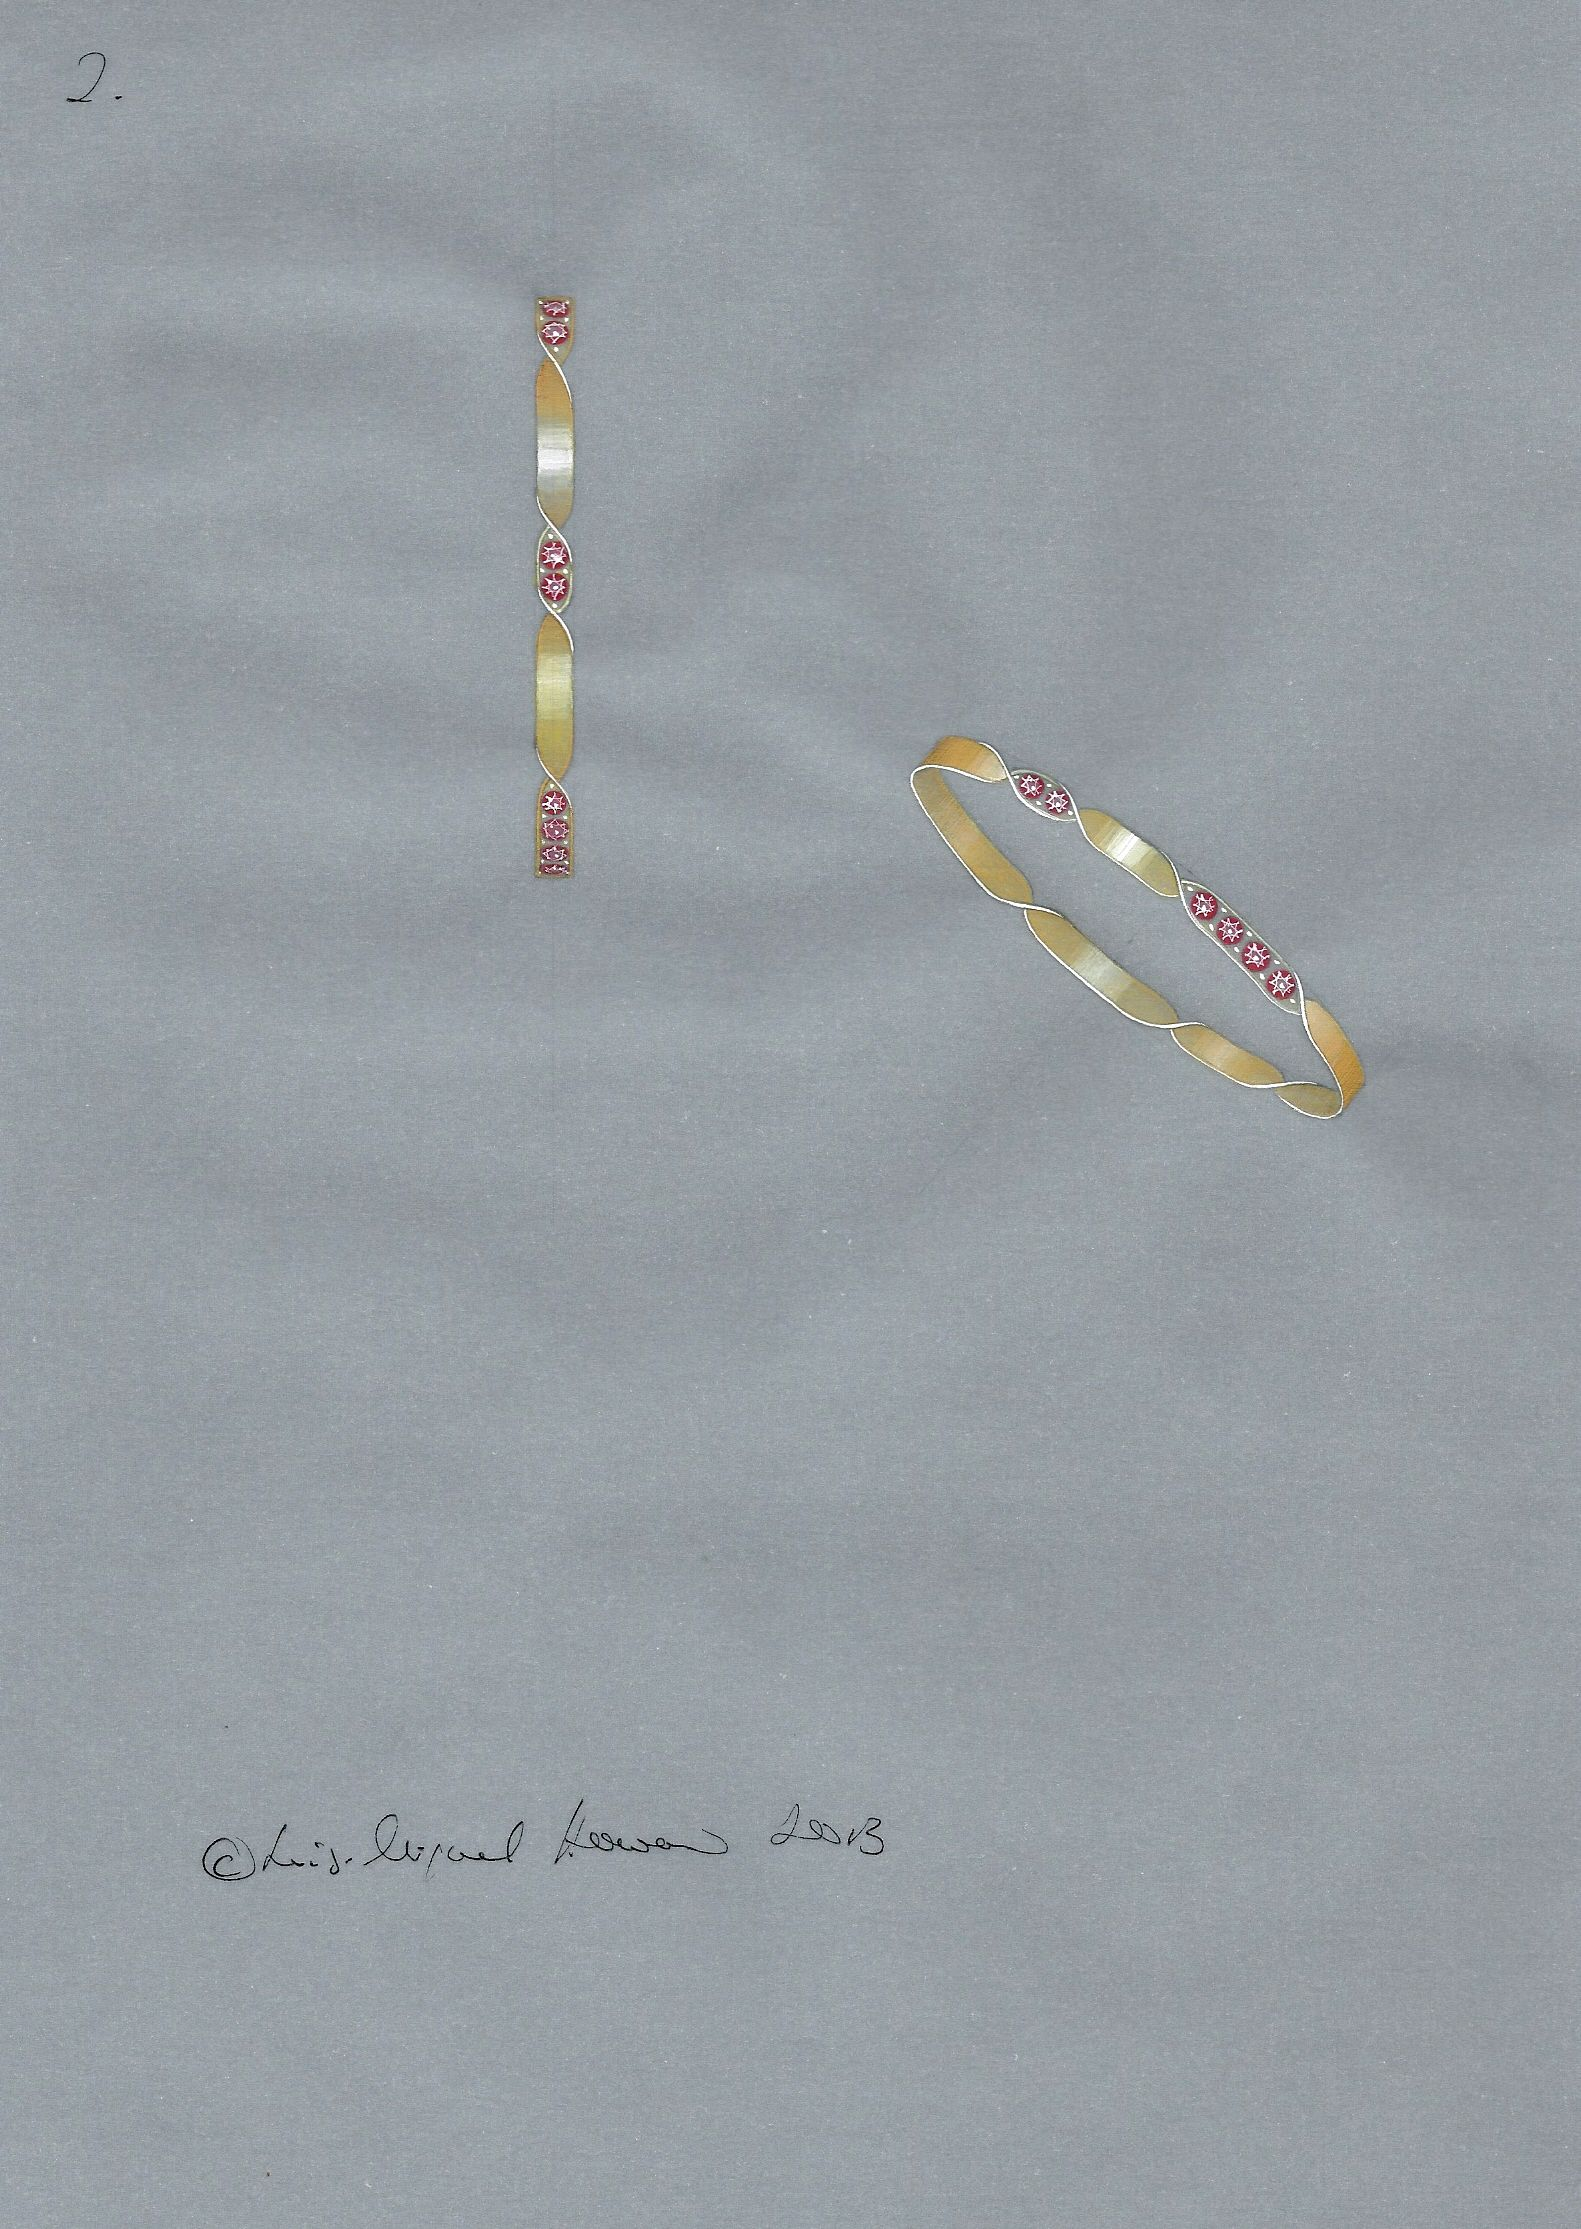 Design Proposal In Gouache For A Gold And Ruby Bracelet